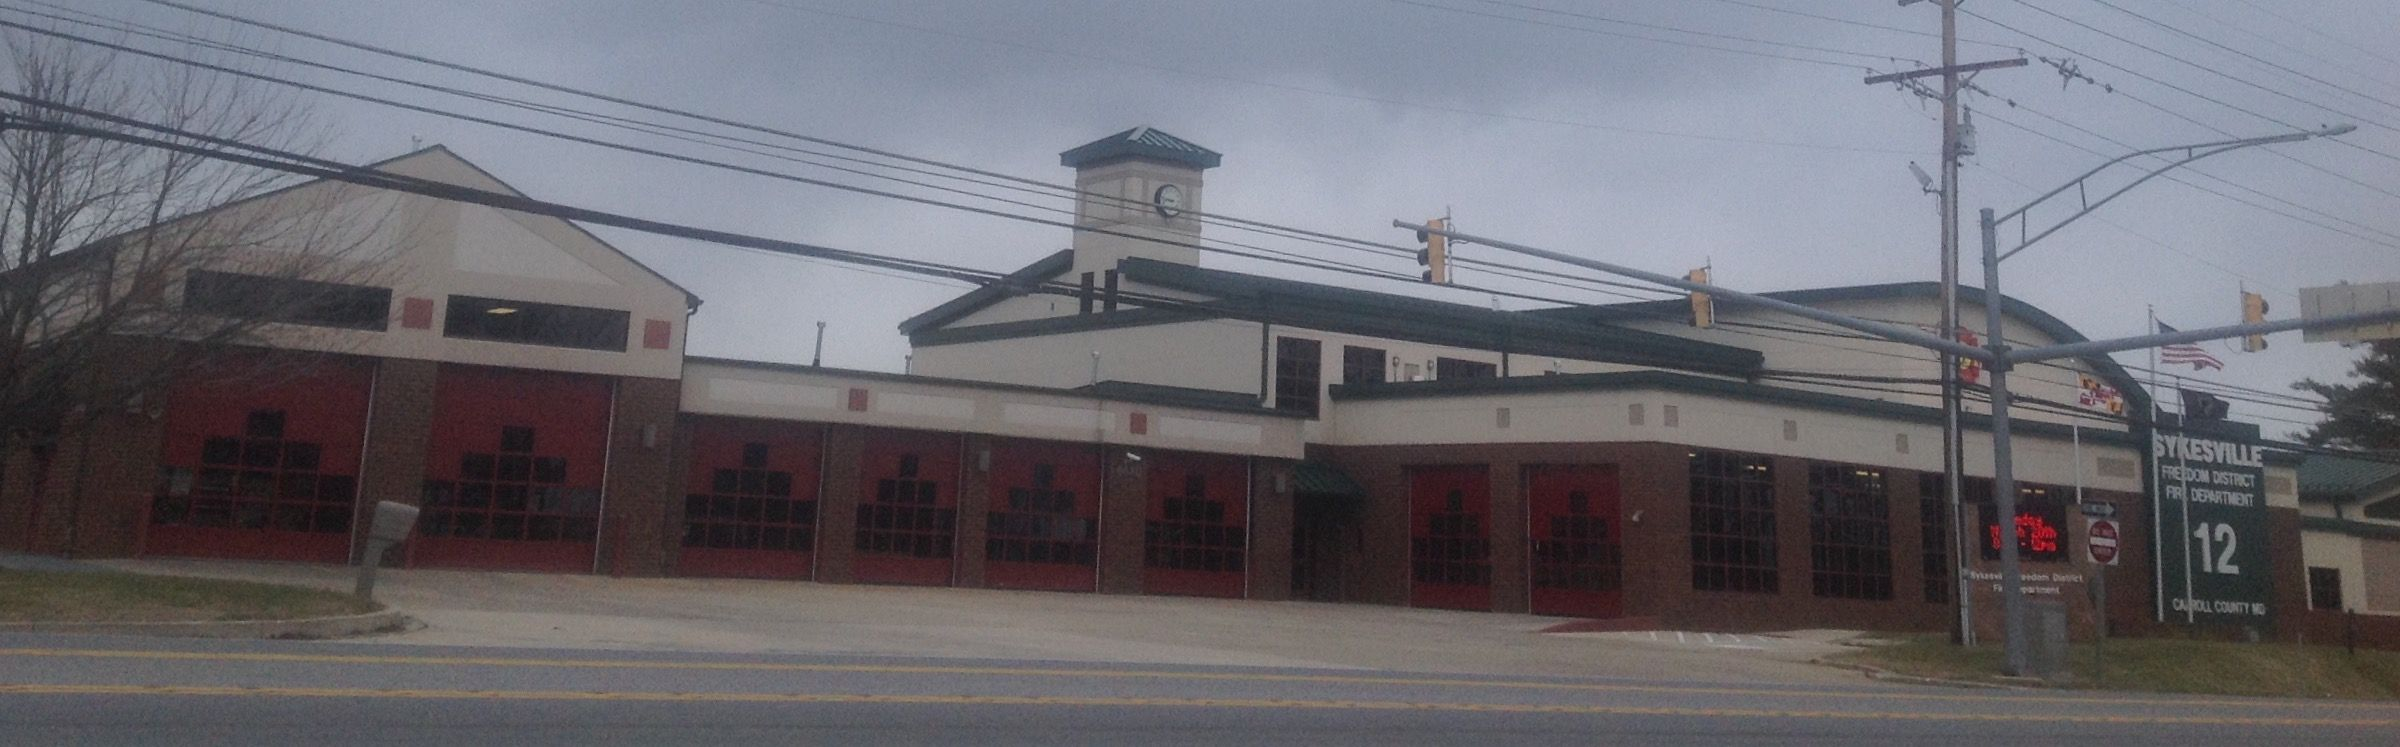 Carroll County Station 12, Engine 123, Engine 124, Truck 12, Squad